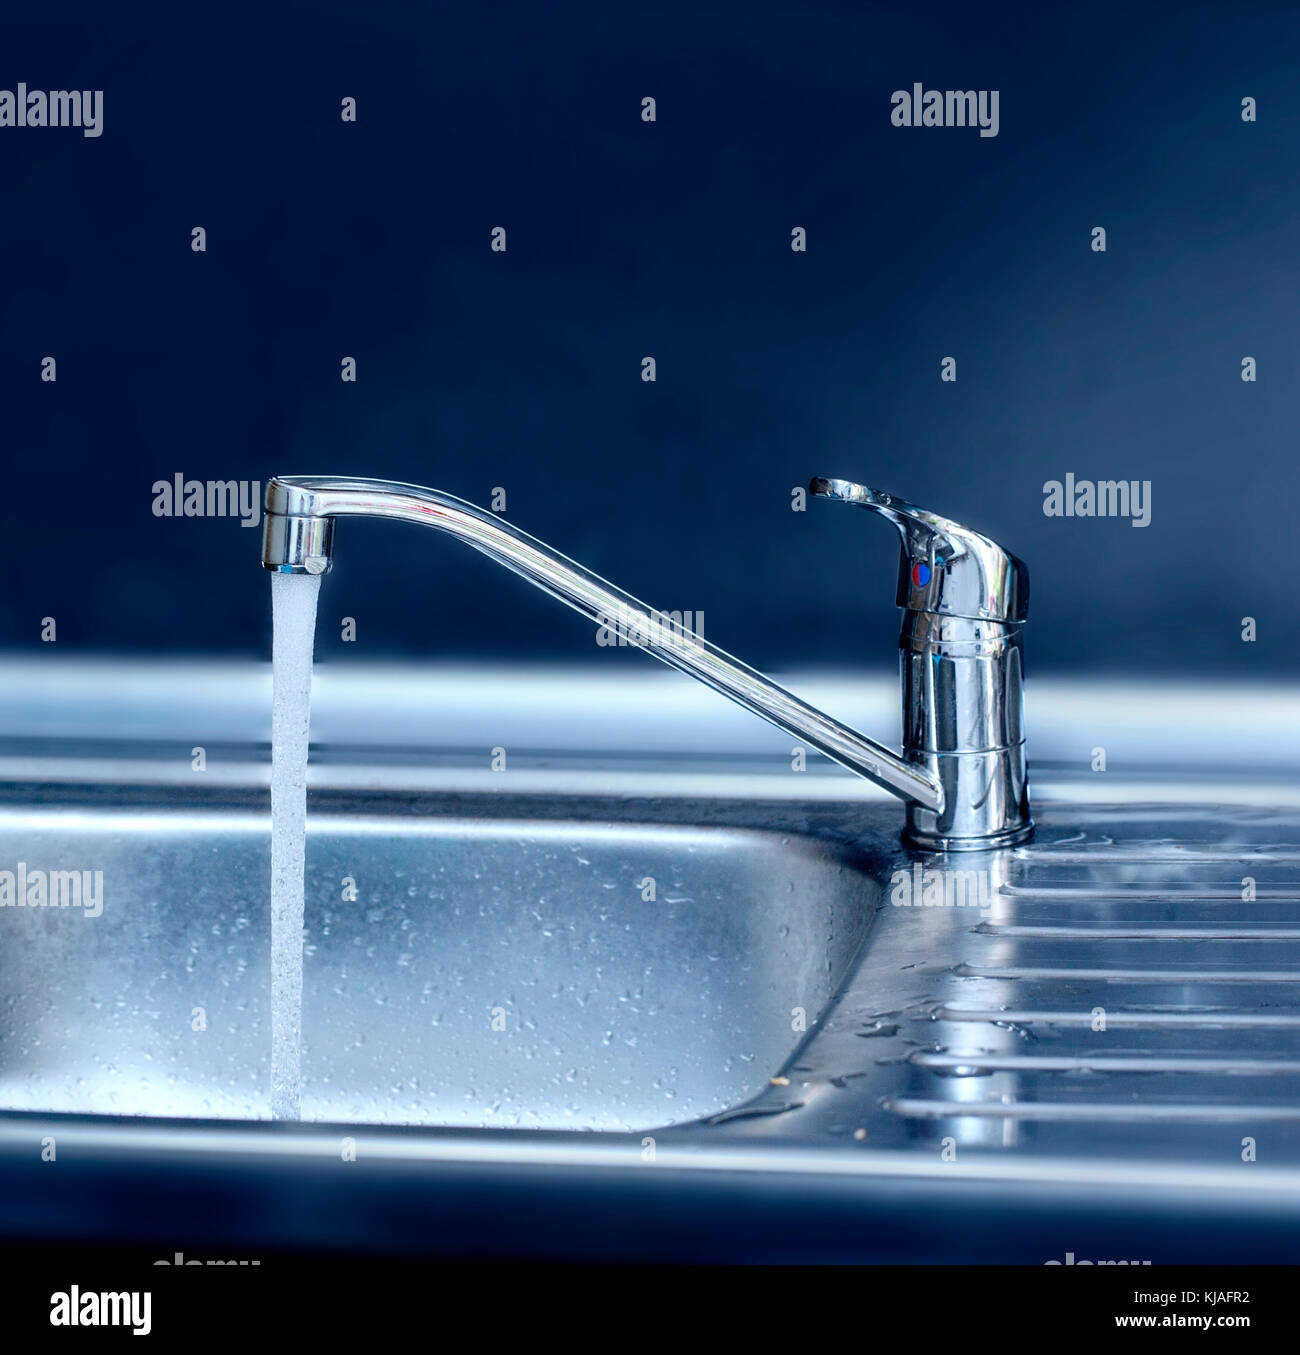 Hot Water Tap Kitchen Stock Photos & Hot Water Tap Kitchen Stock ...